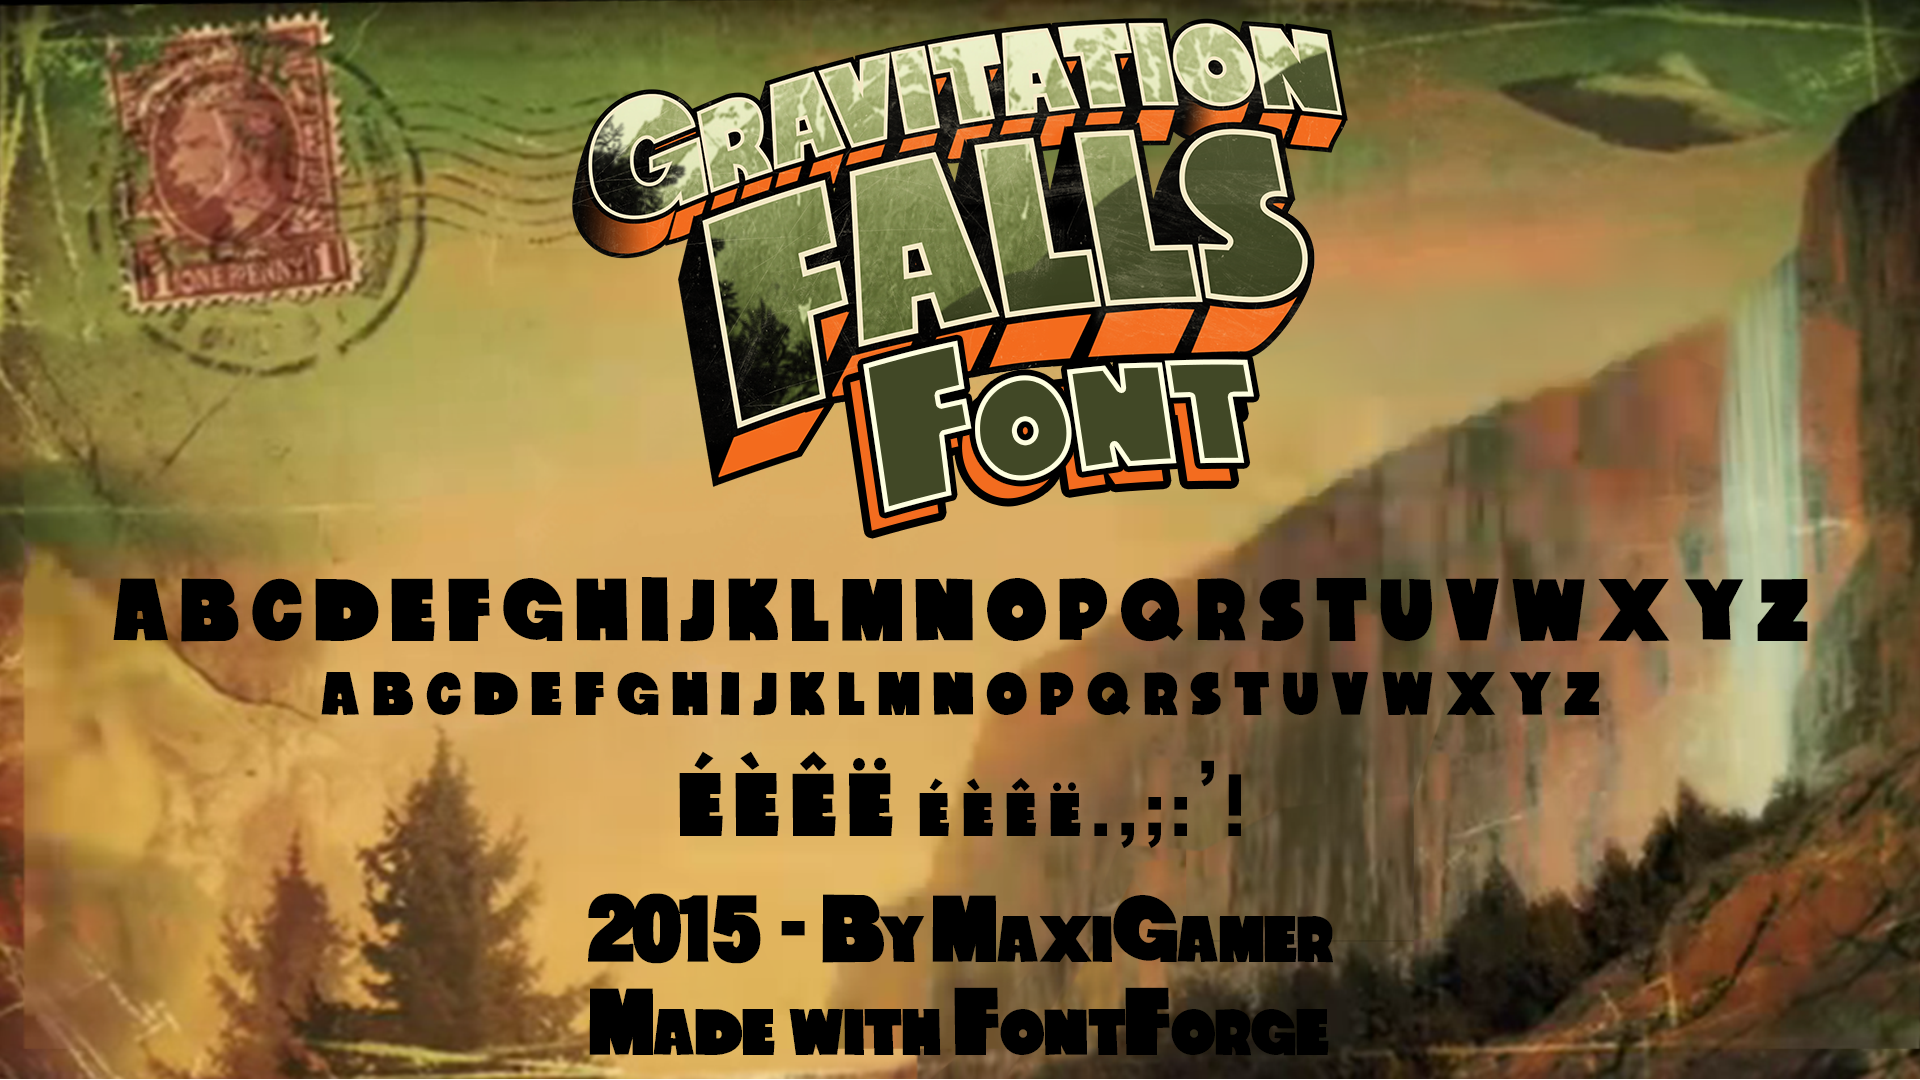 Gravitation Falls FONT (Download Now!)